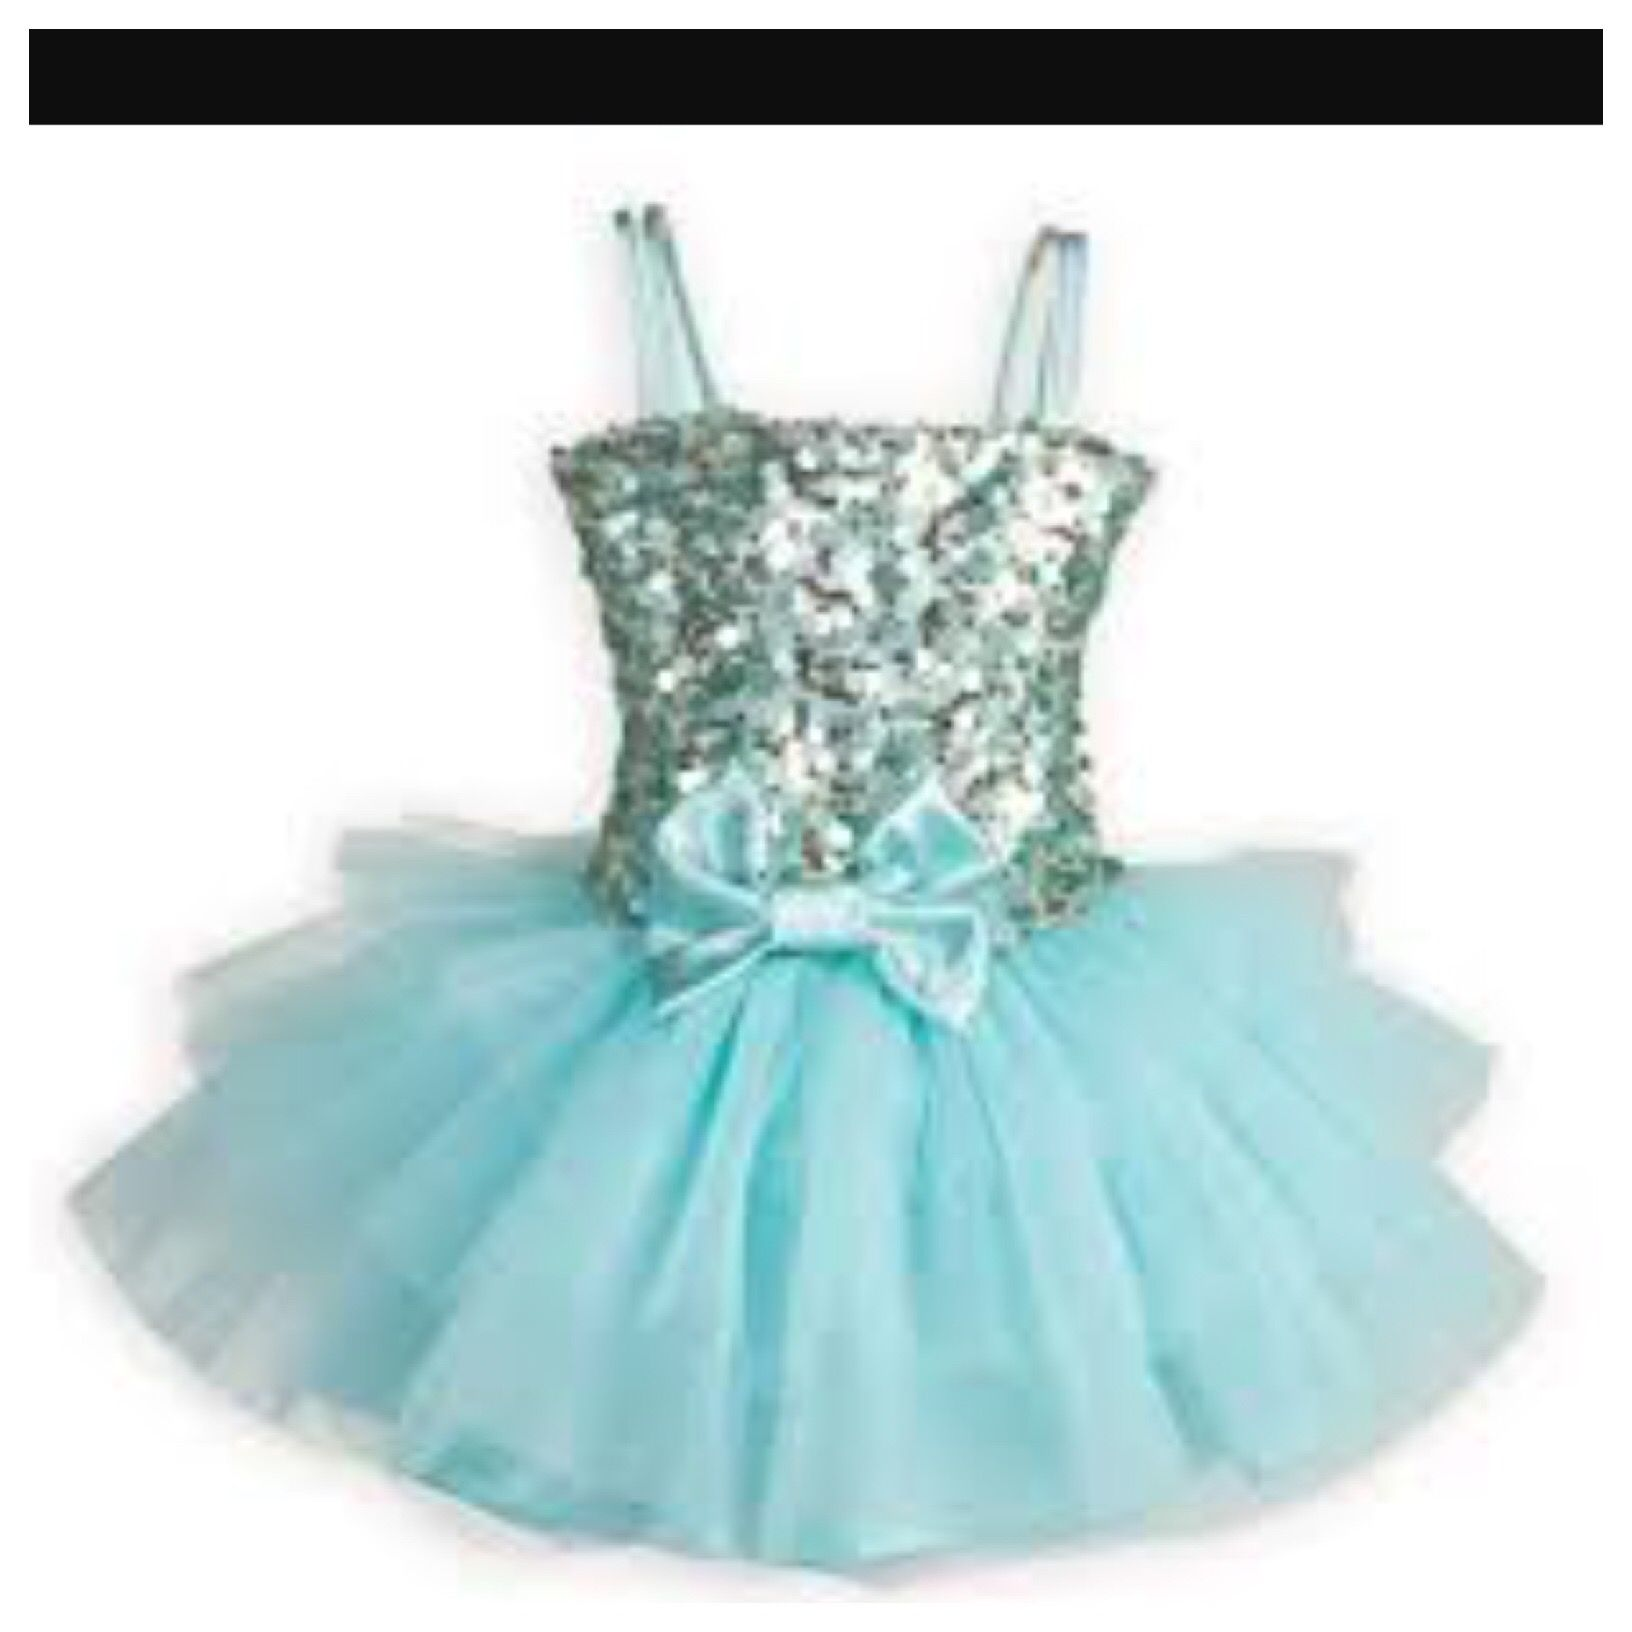 Perfect Ballerina Party Dress Image - All Wedding Dresses ...